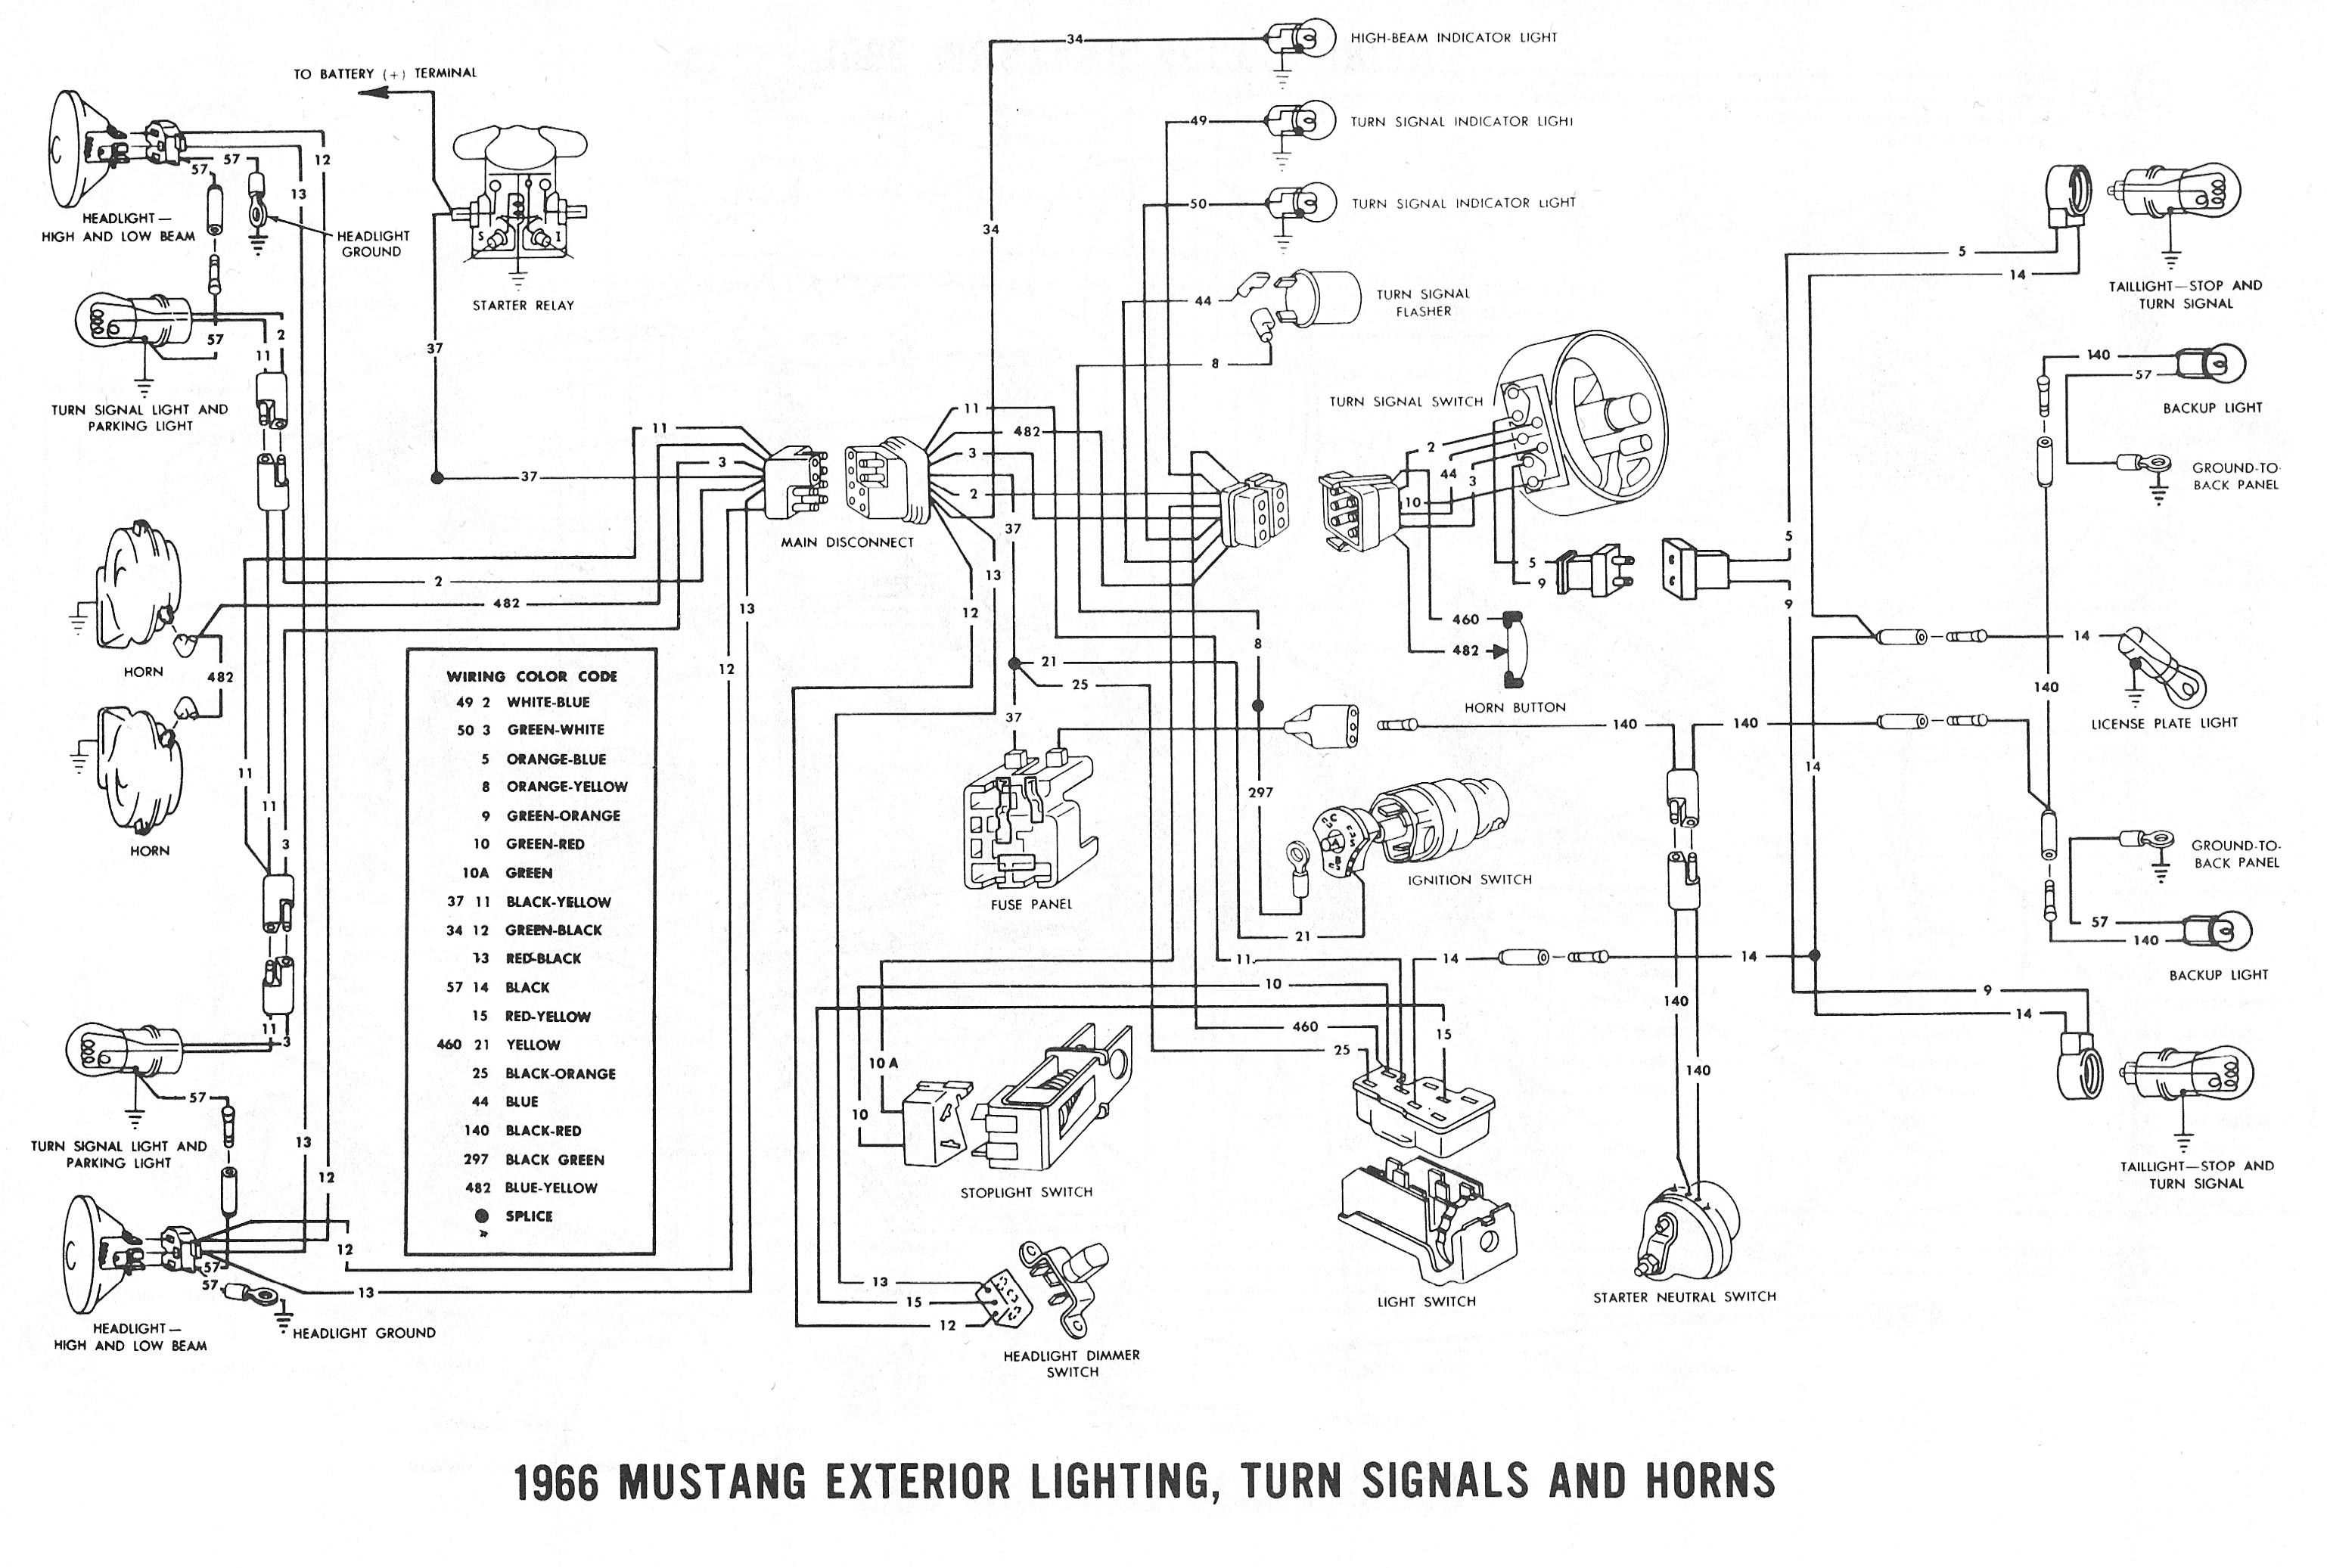 [QNCB_7524]  1966 Mustang Wiring Diagram - Wiring Diagrams | 1966 Ford F100 Engine Wiring Diagram Free Picture |  | karox.fr